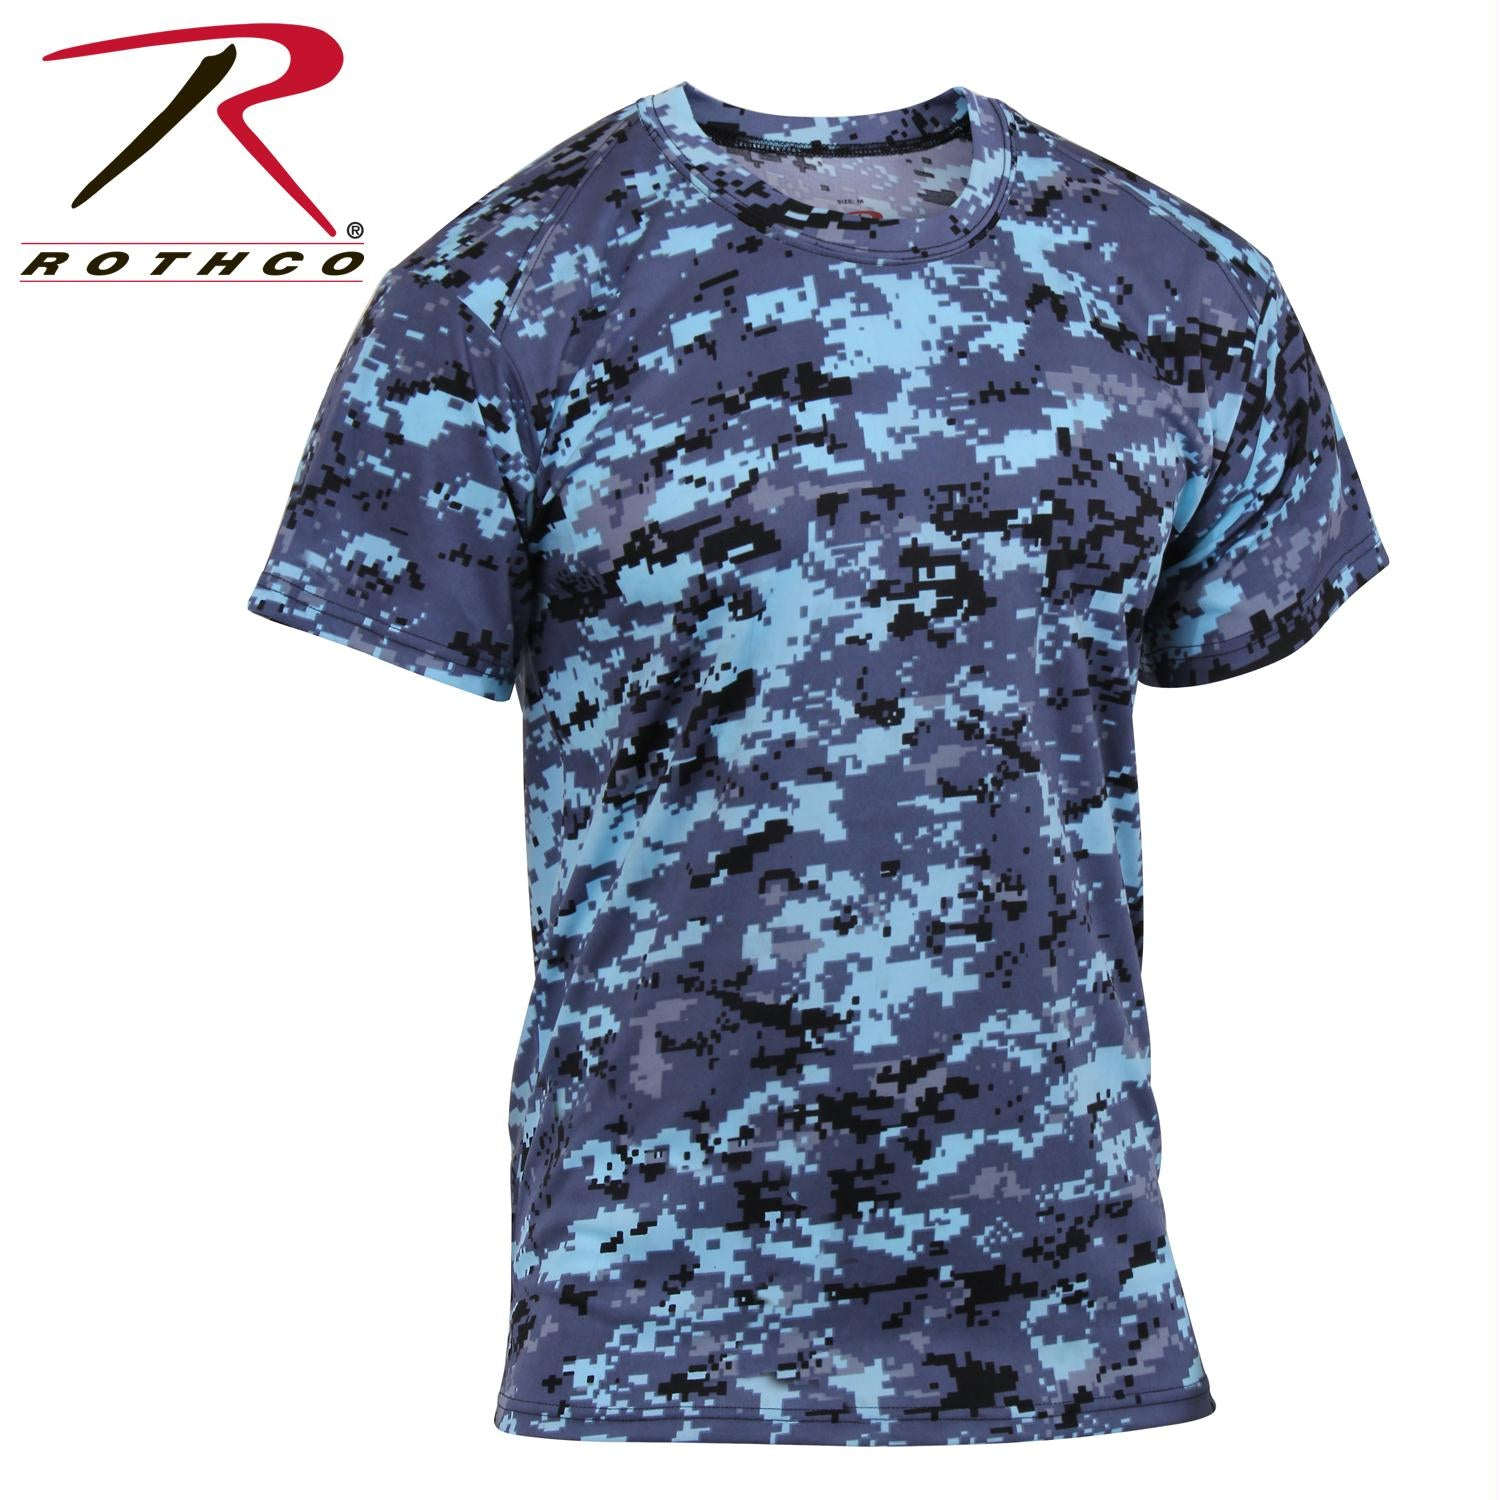 Rothco Polyester Performance T-Shirt - Sky Blue Digital Camo / L